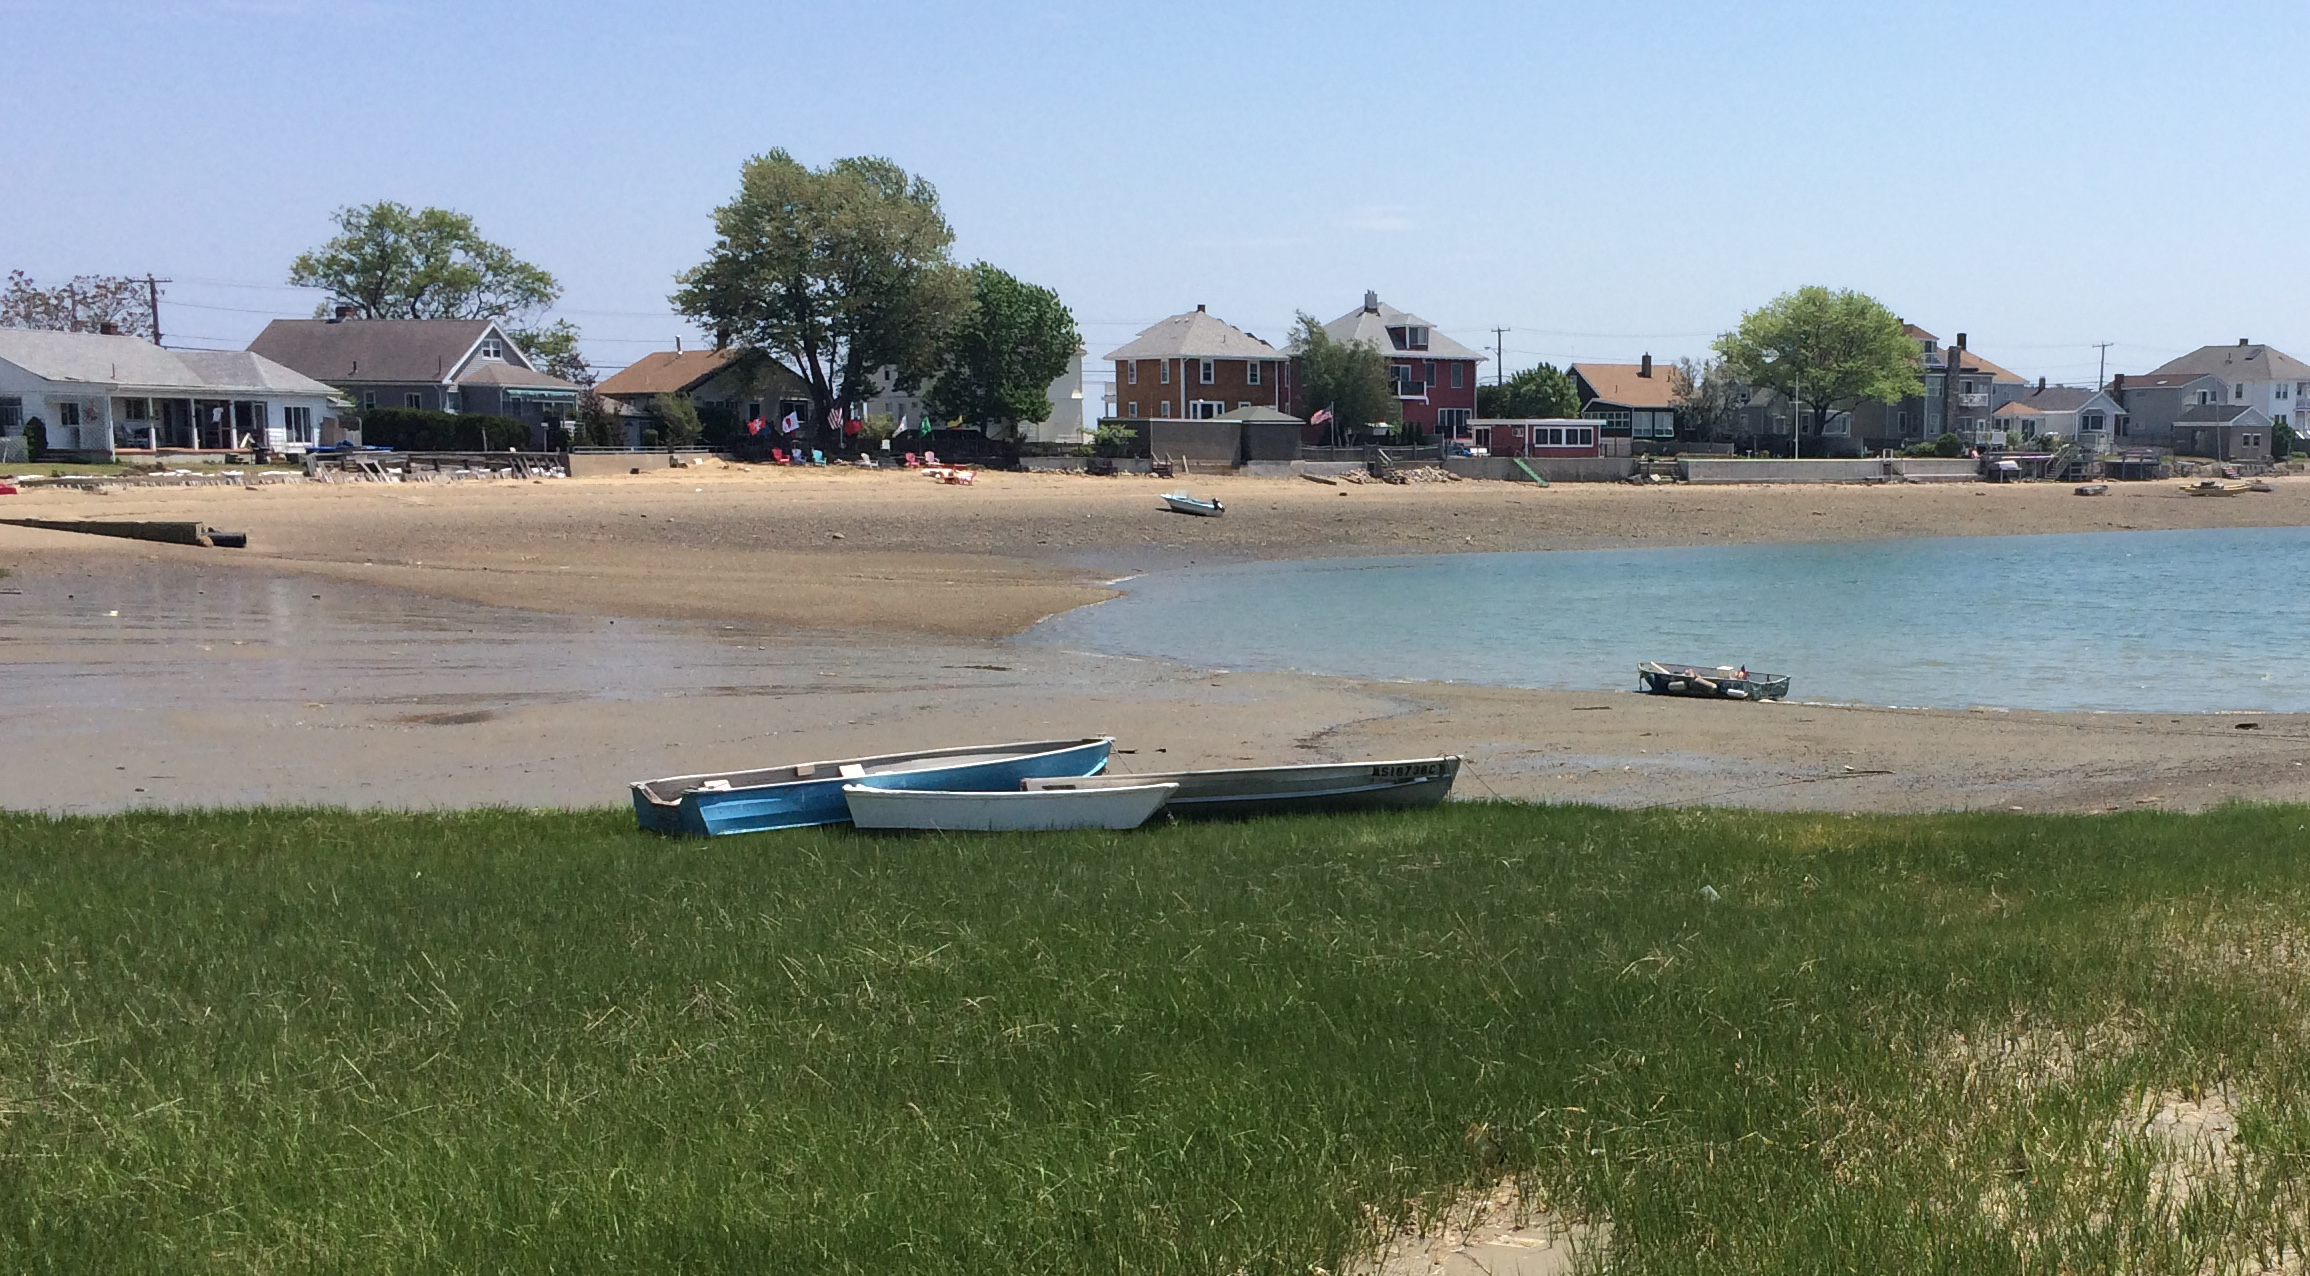 Harbor view in Marblehead MA